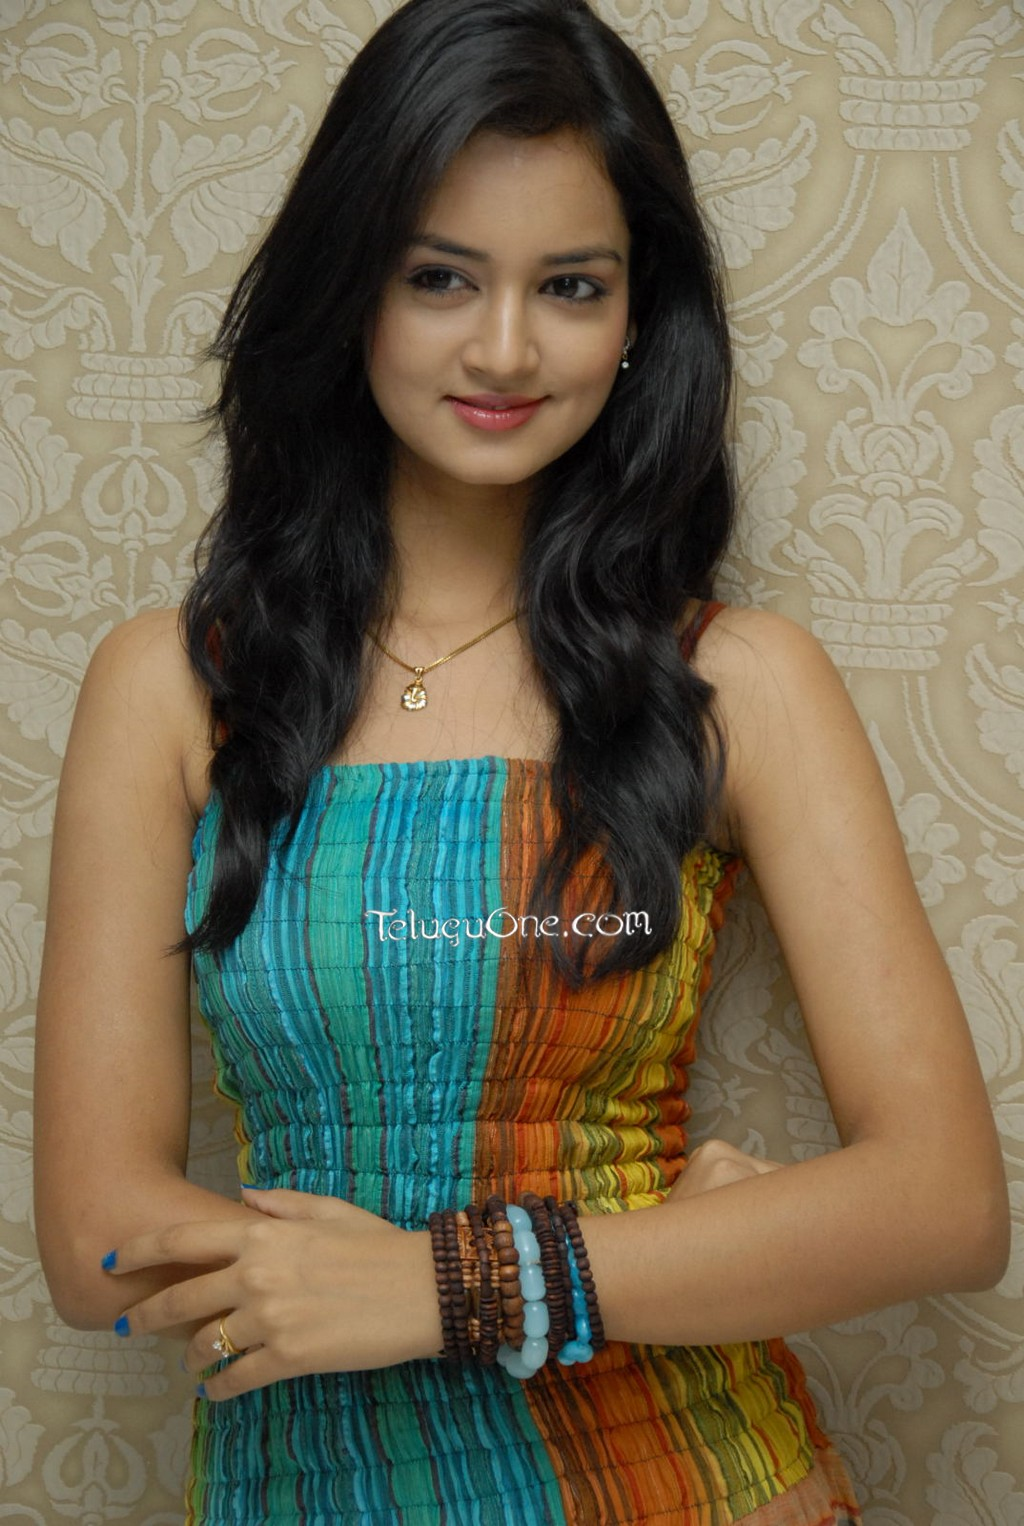 photos telugu actress telugu actres telugu actress wallpapers sexy